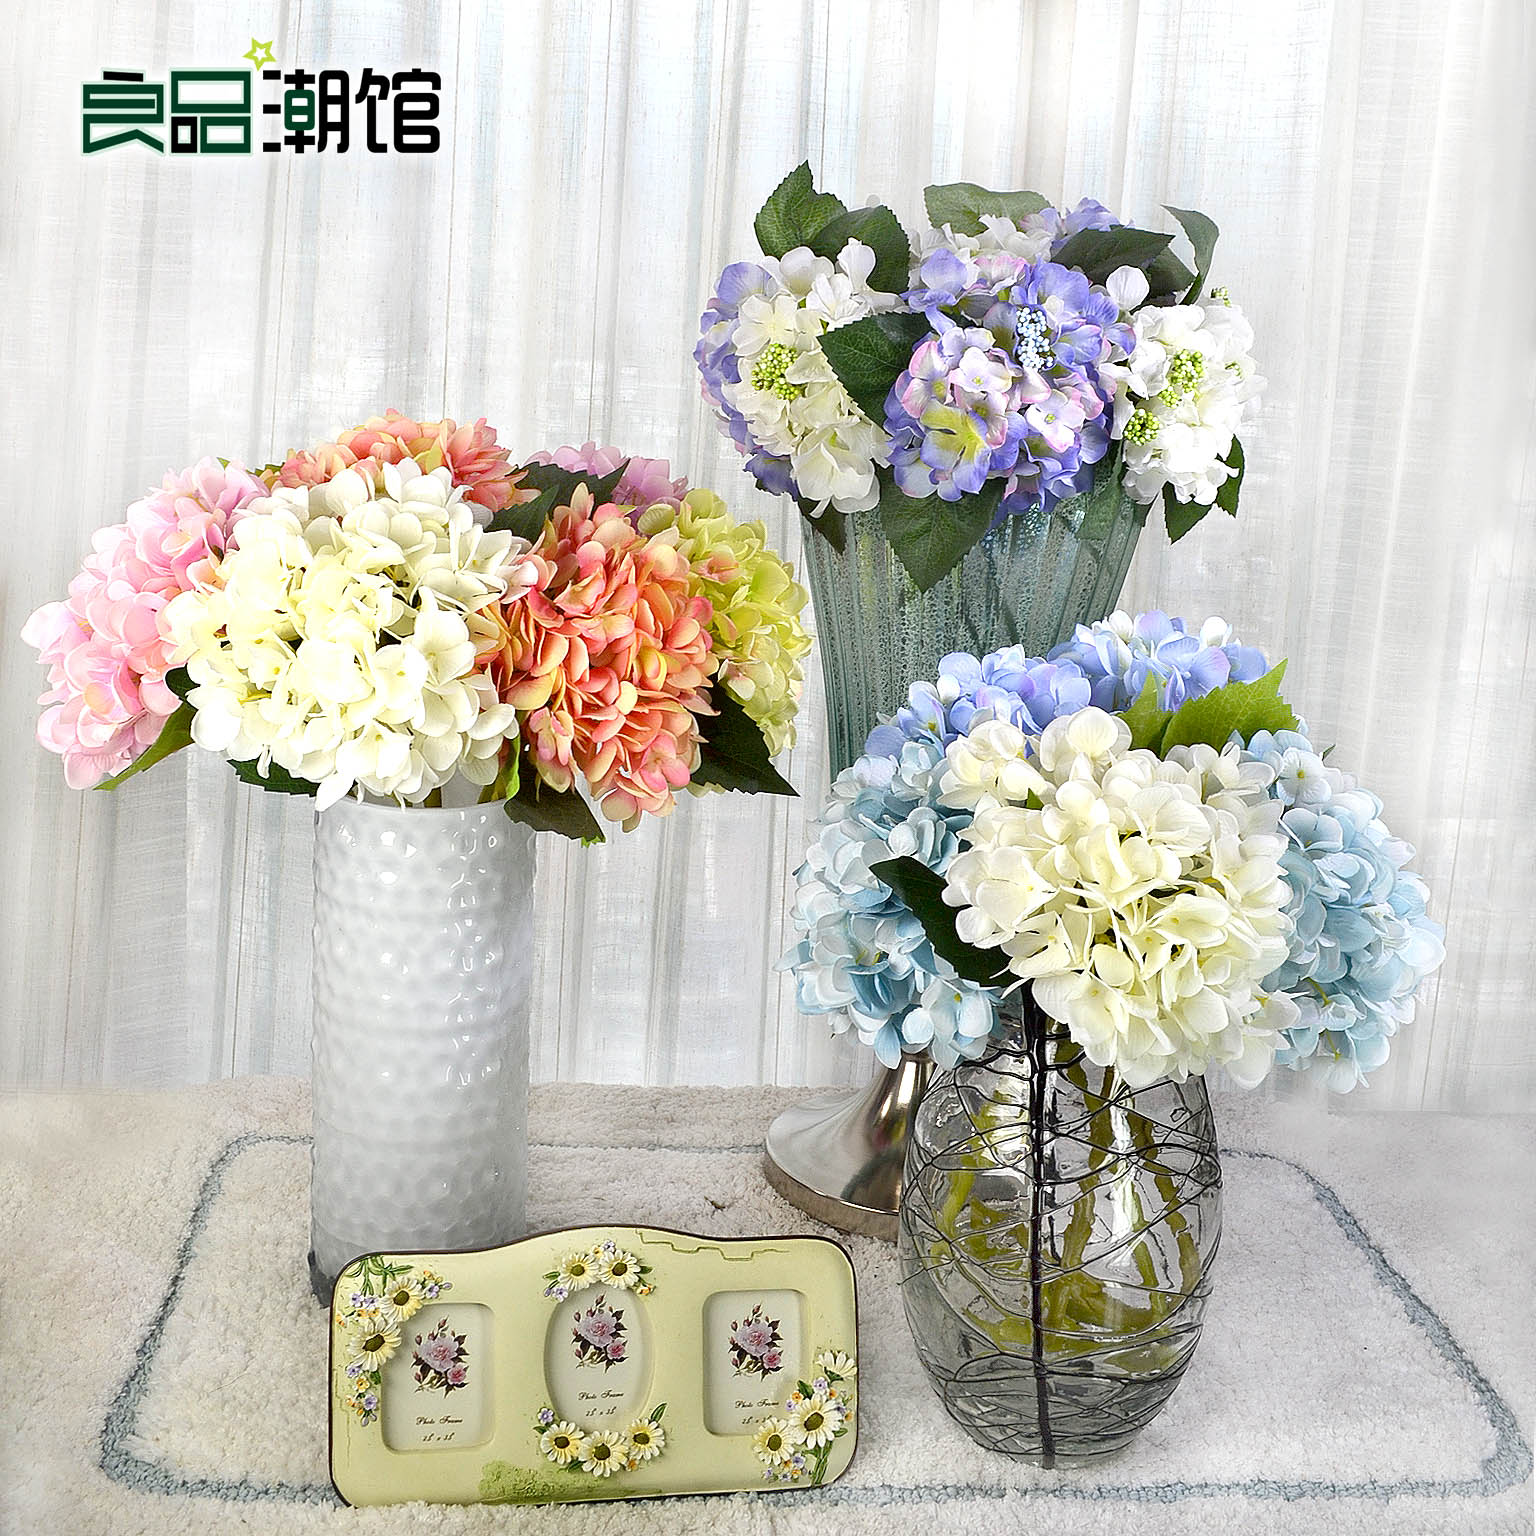 China Silk Flower Garden China Silk Flower Garden Shopping Guide At